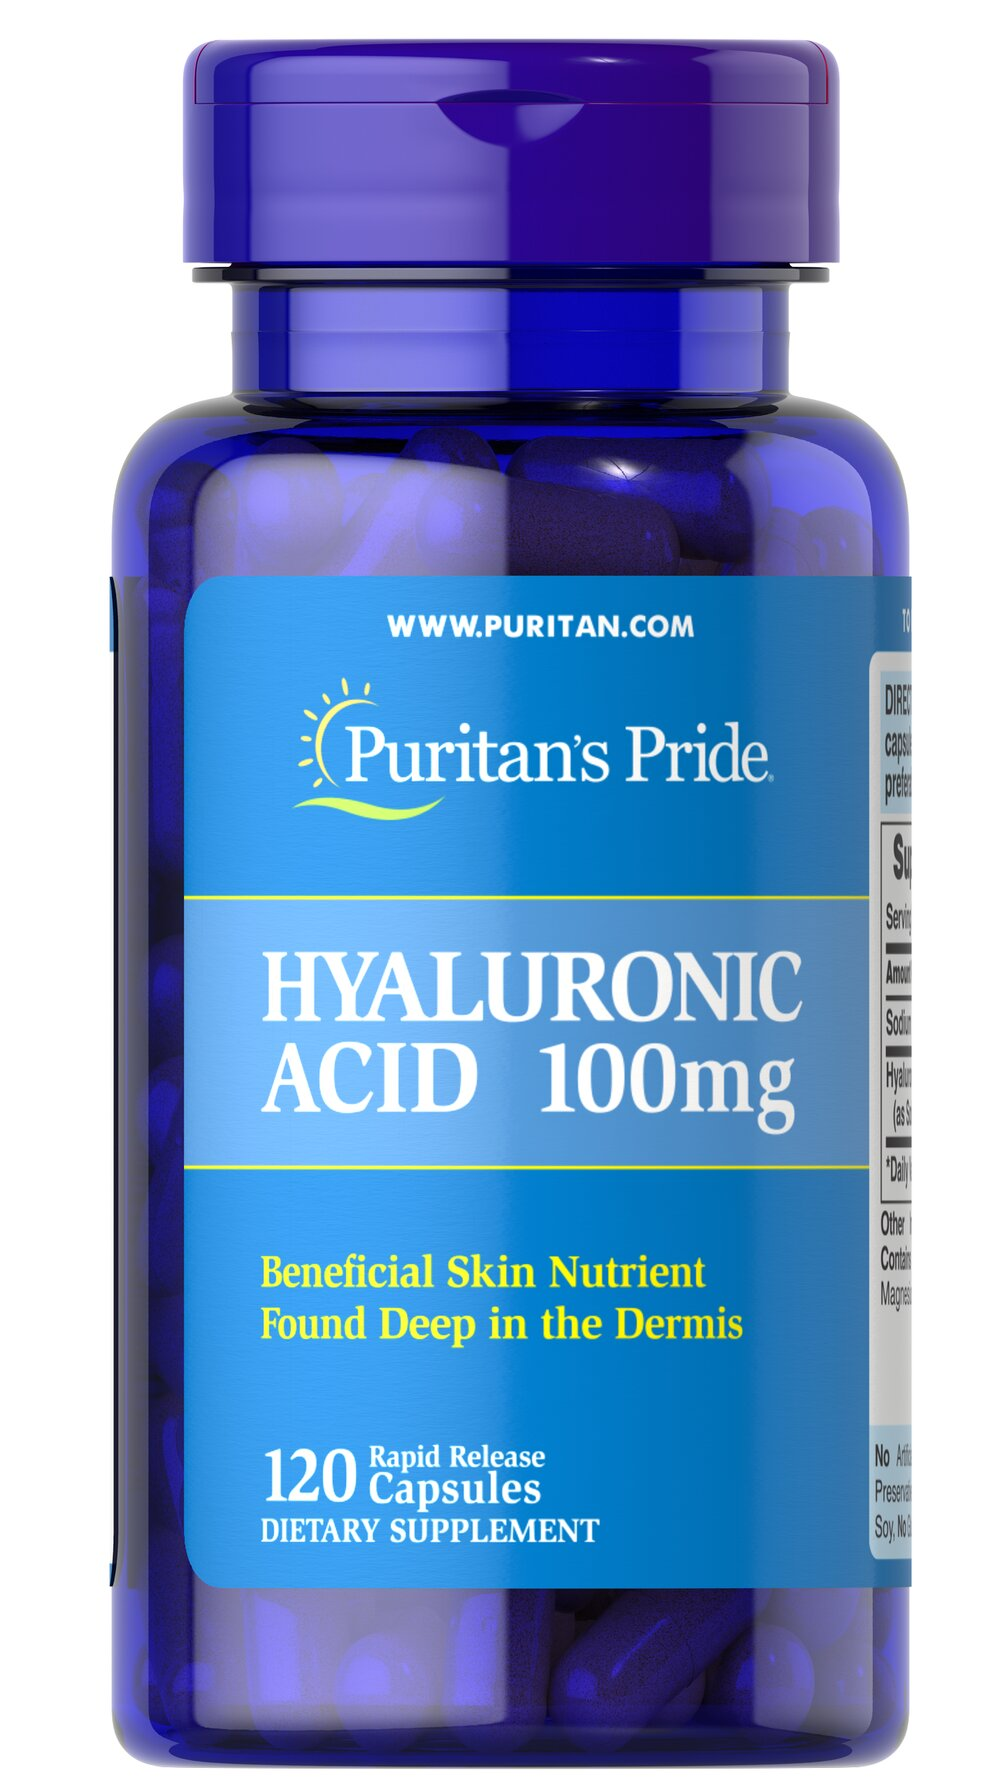 Hyaluronic Acid 100 mg <p>Helps lubricate joints**</p>   <p>Hyaluronic Acid is a polysaccharide found in almost all adult connective tissue, including joints, ligaments, tendons and skin.** Just one Hyaluronic Acid capsule a day can help maintain the fluid between your joints, providing the cushioning and lubrication necessary for easy movement.**</p> 120 Capsules 100 mg $65.59